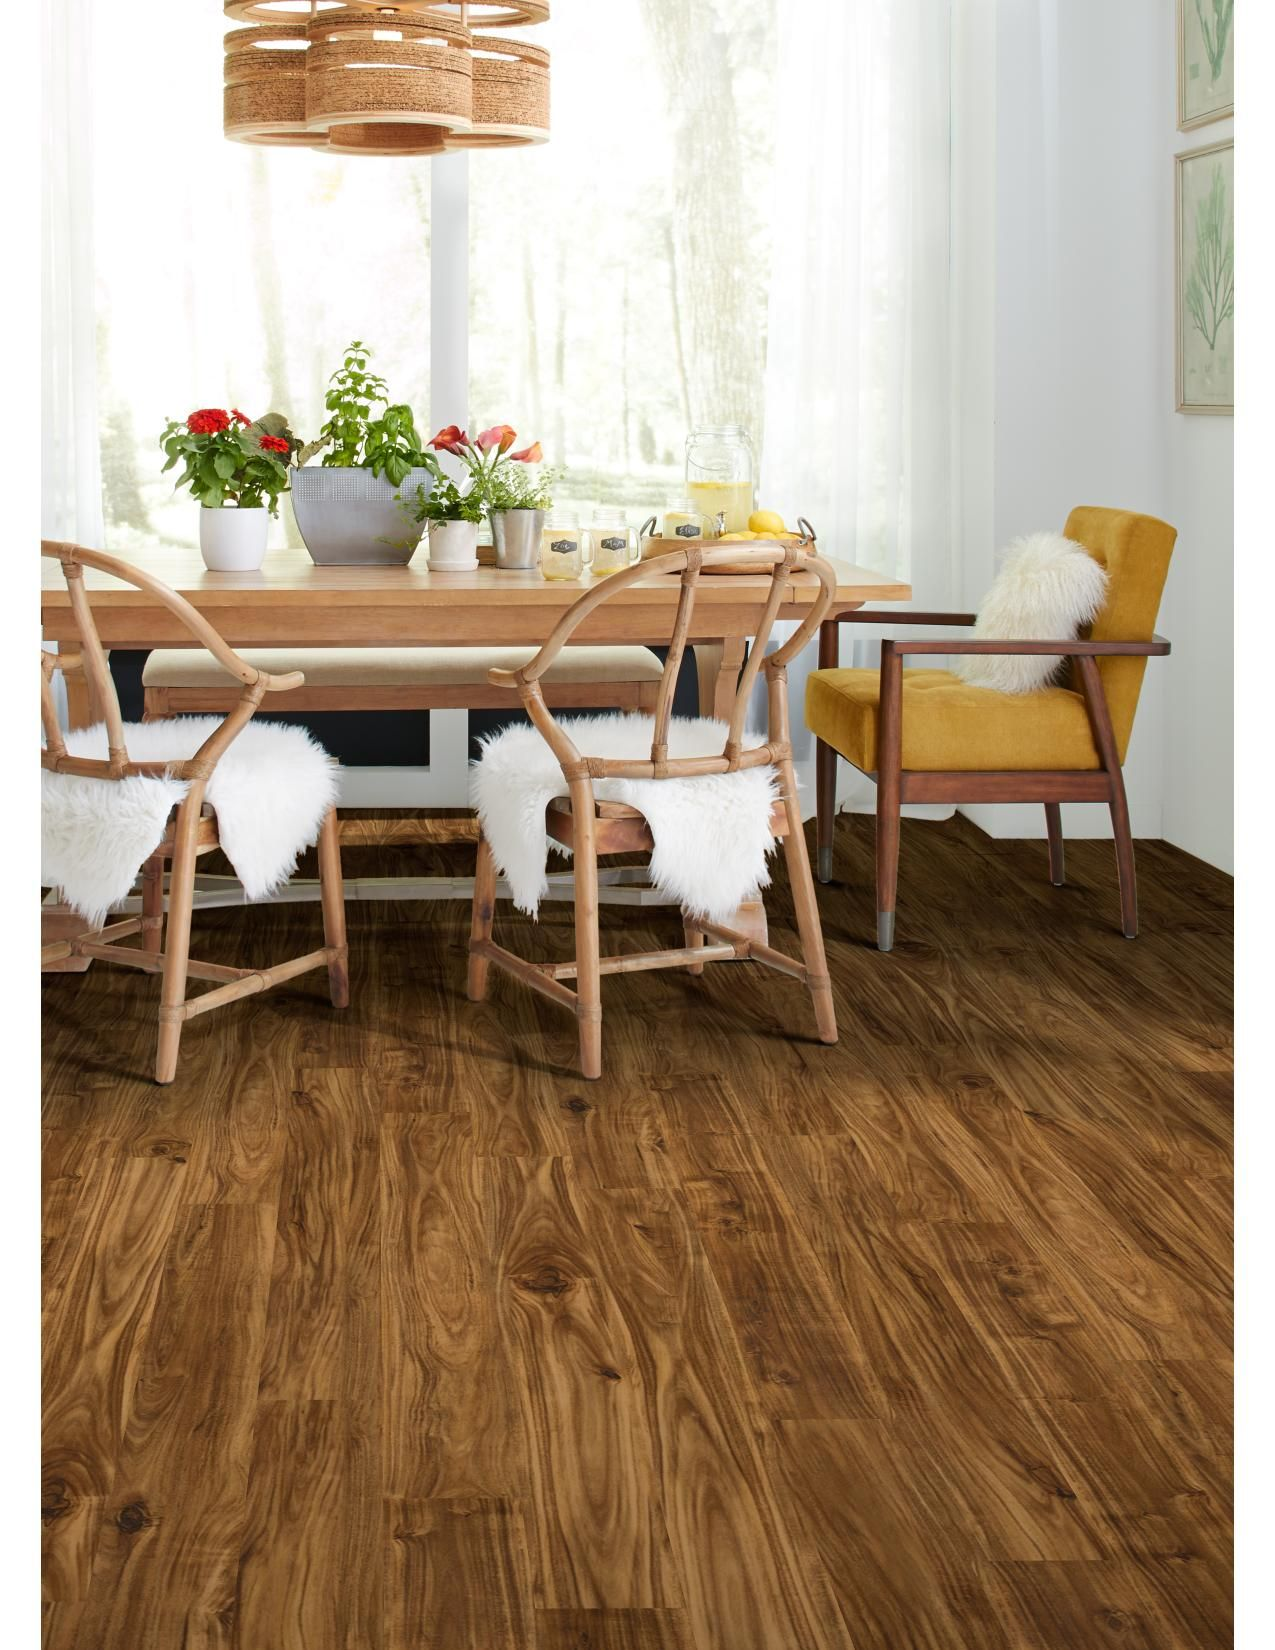 Downs H2O Shaw Tropical flooring from